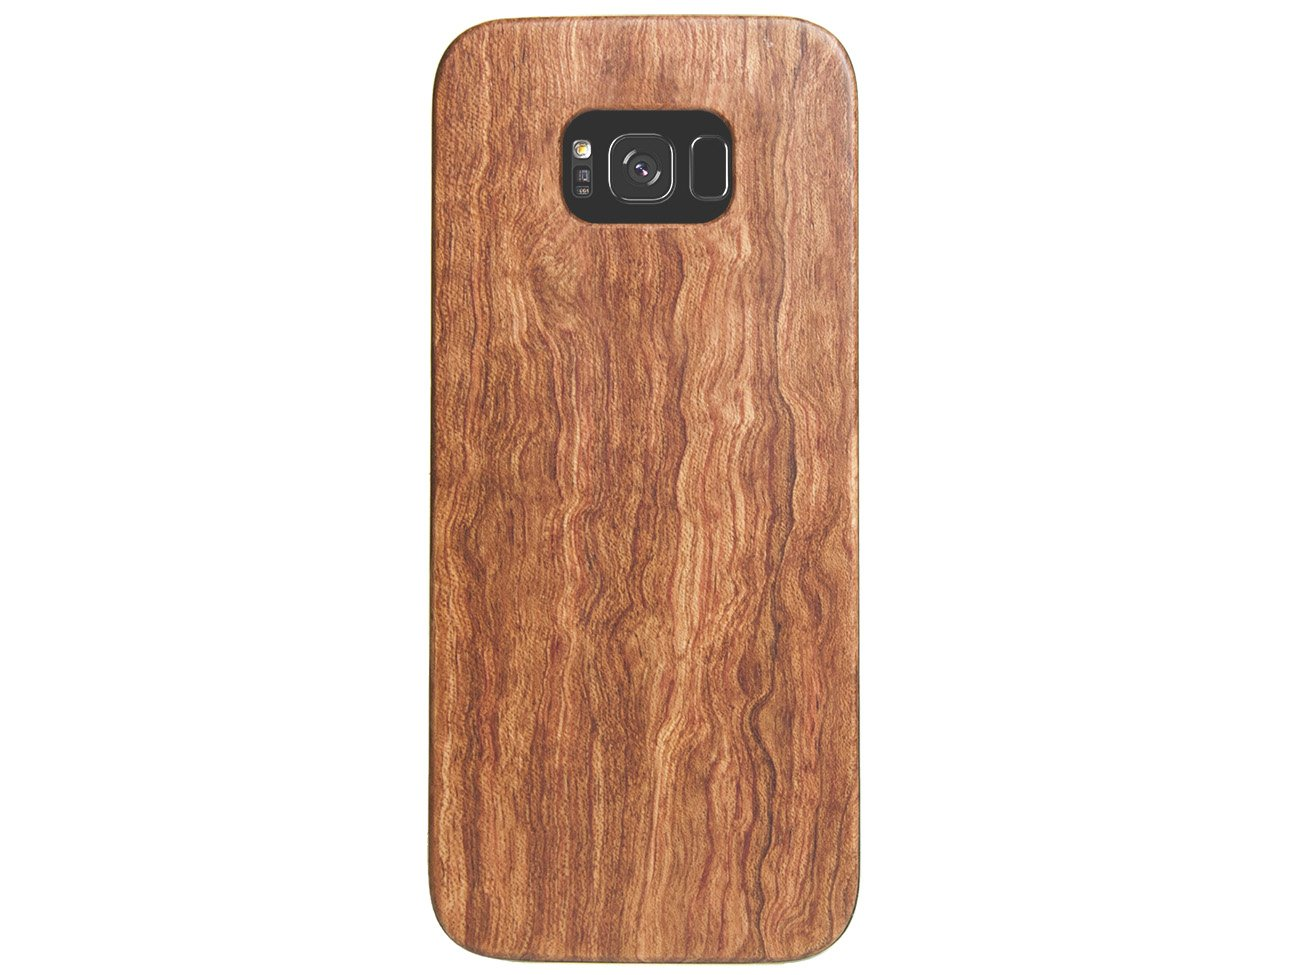 info for ad125 1b71d Wooden Galaxy S8 Plus Case - Mahogany Wood Galaxy S8+ Cover